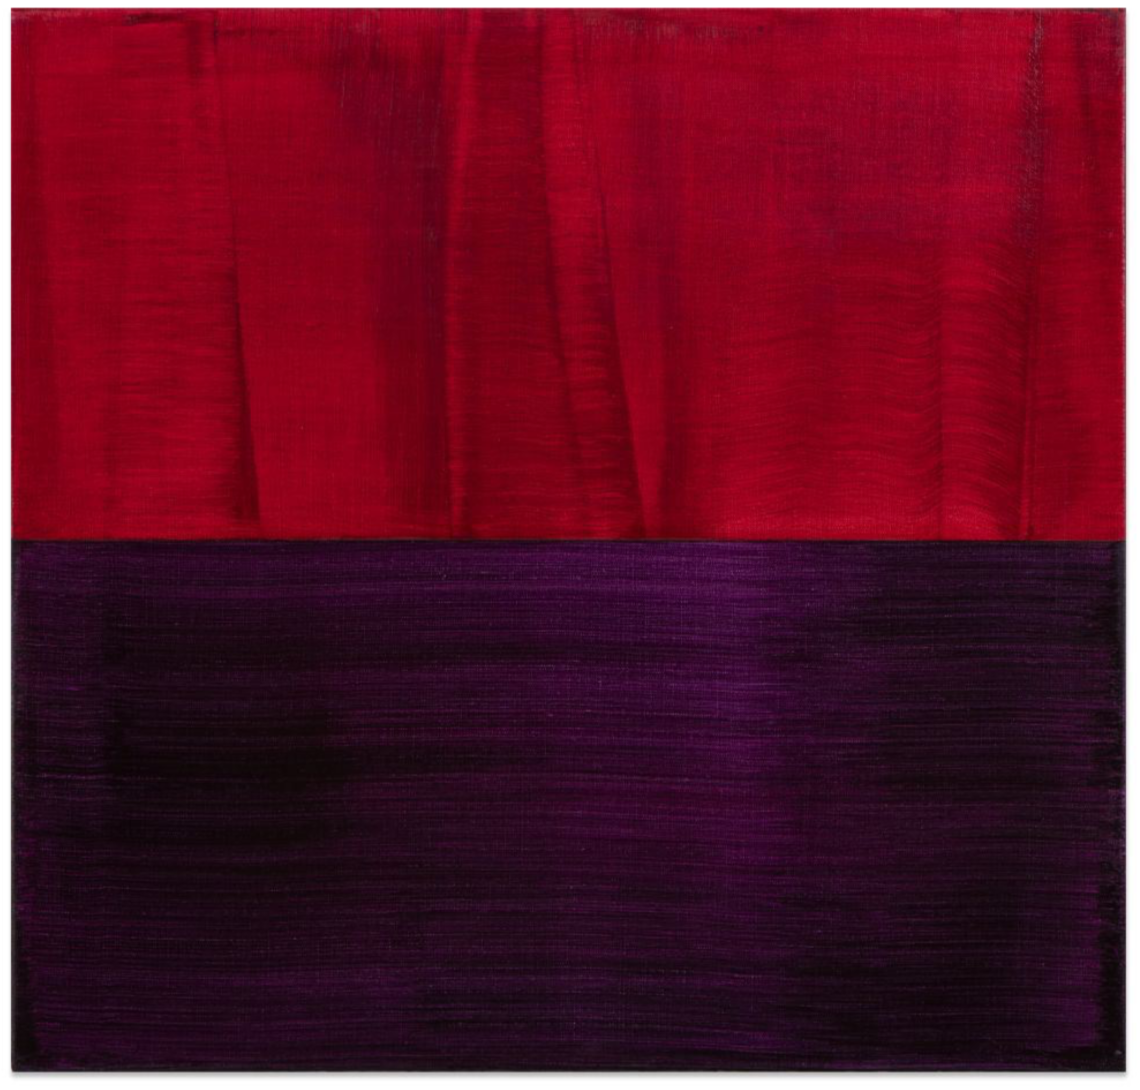 Red and Violet Blue 1 , 2016, Oil on linen, 23 x 24 inches